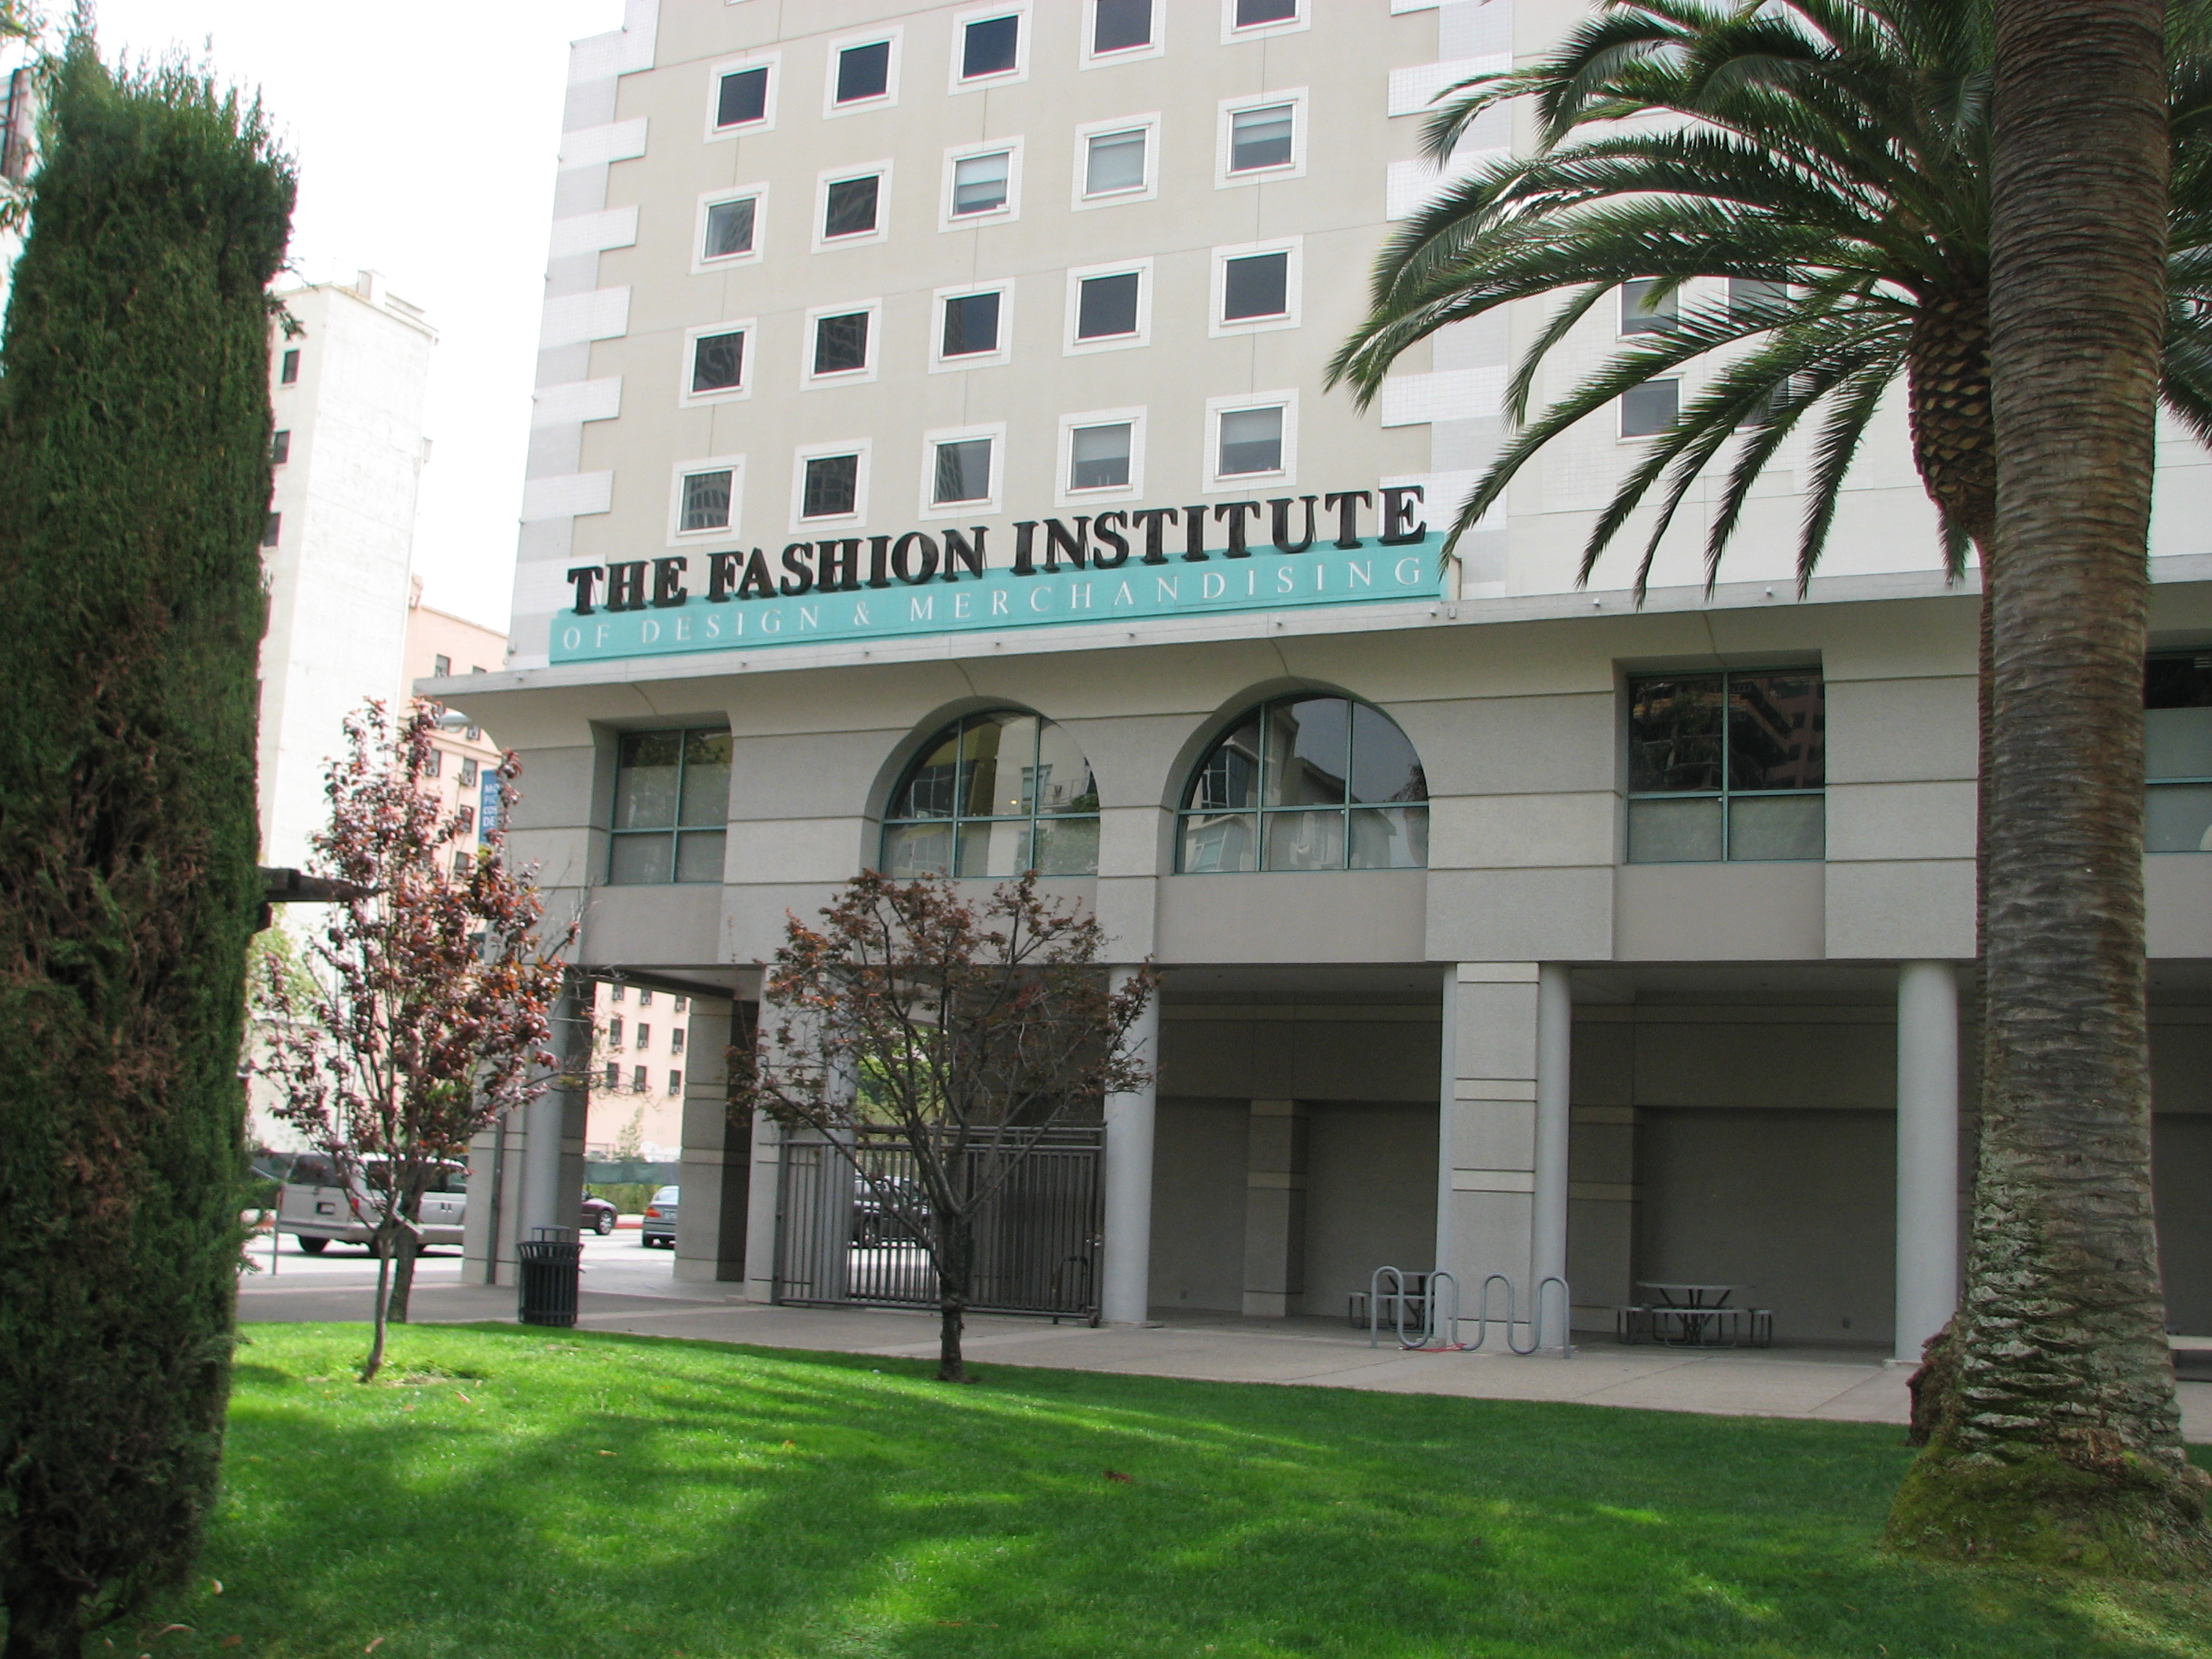 The fashion institute fees 9